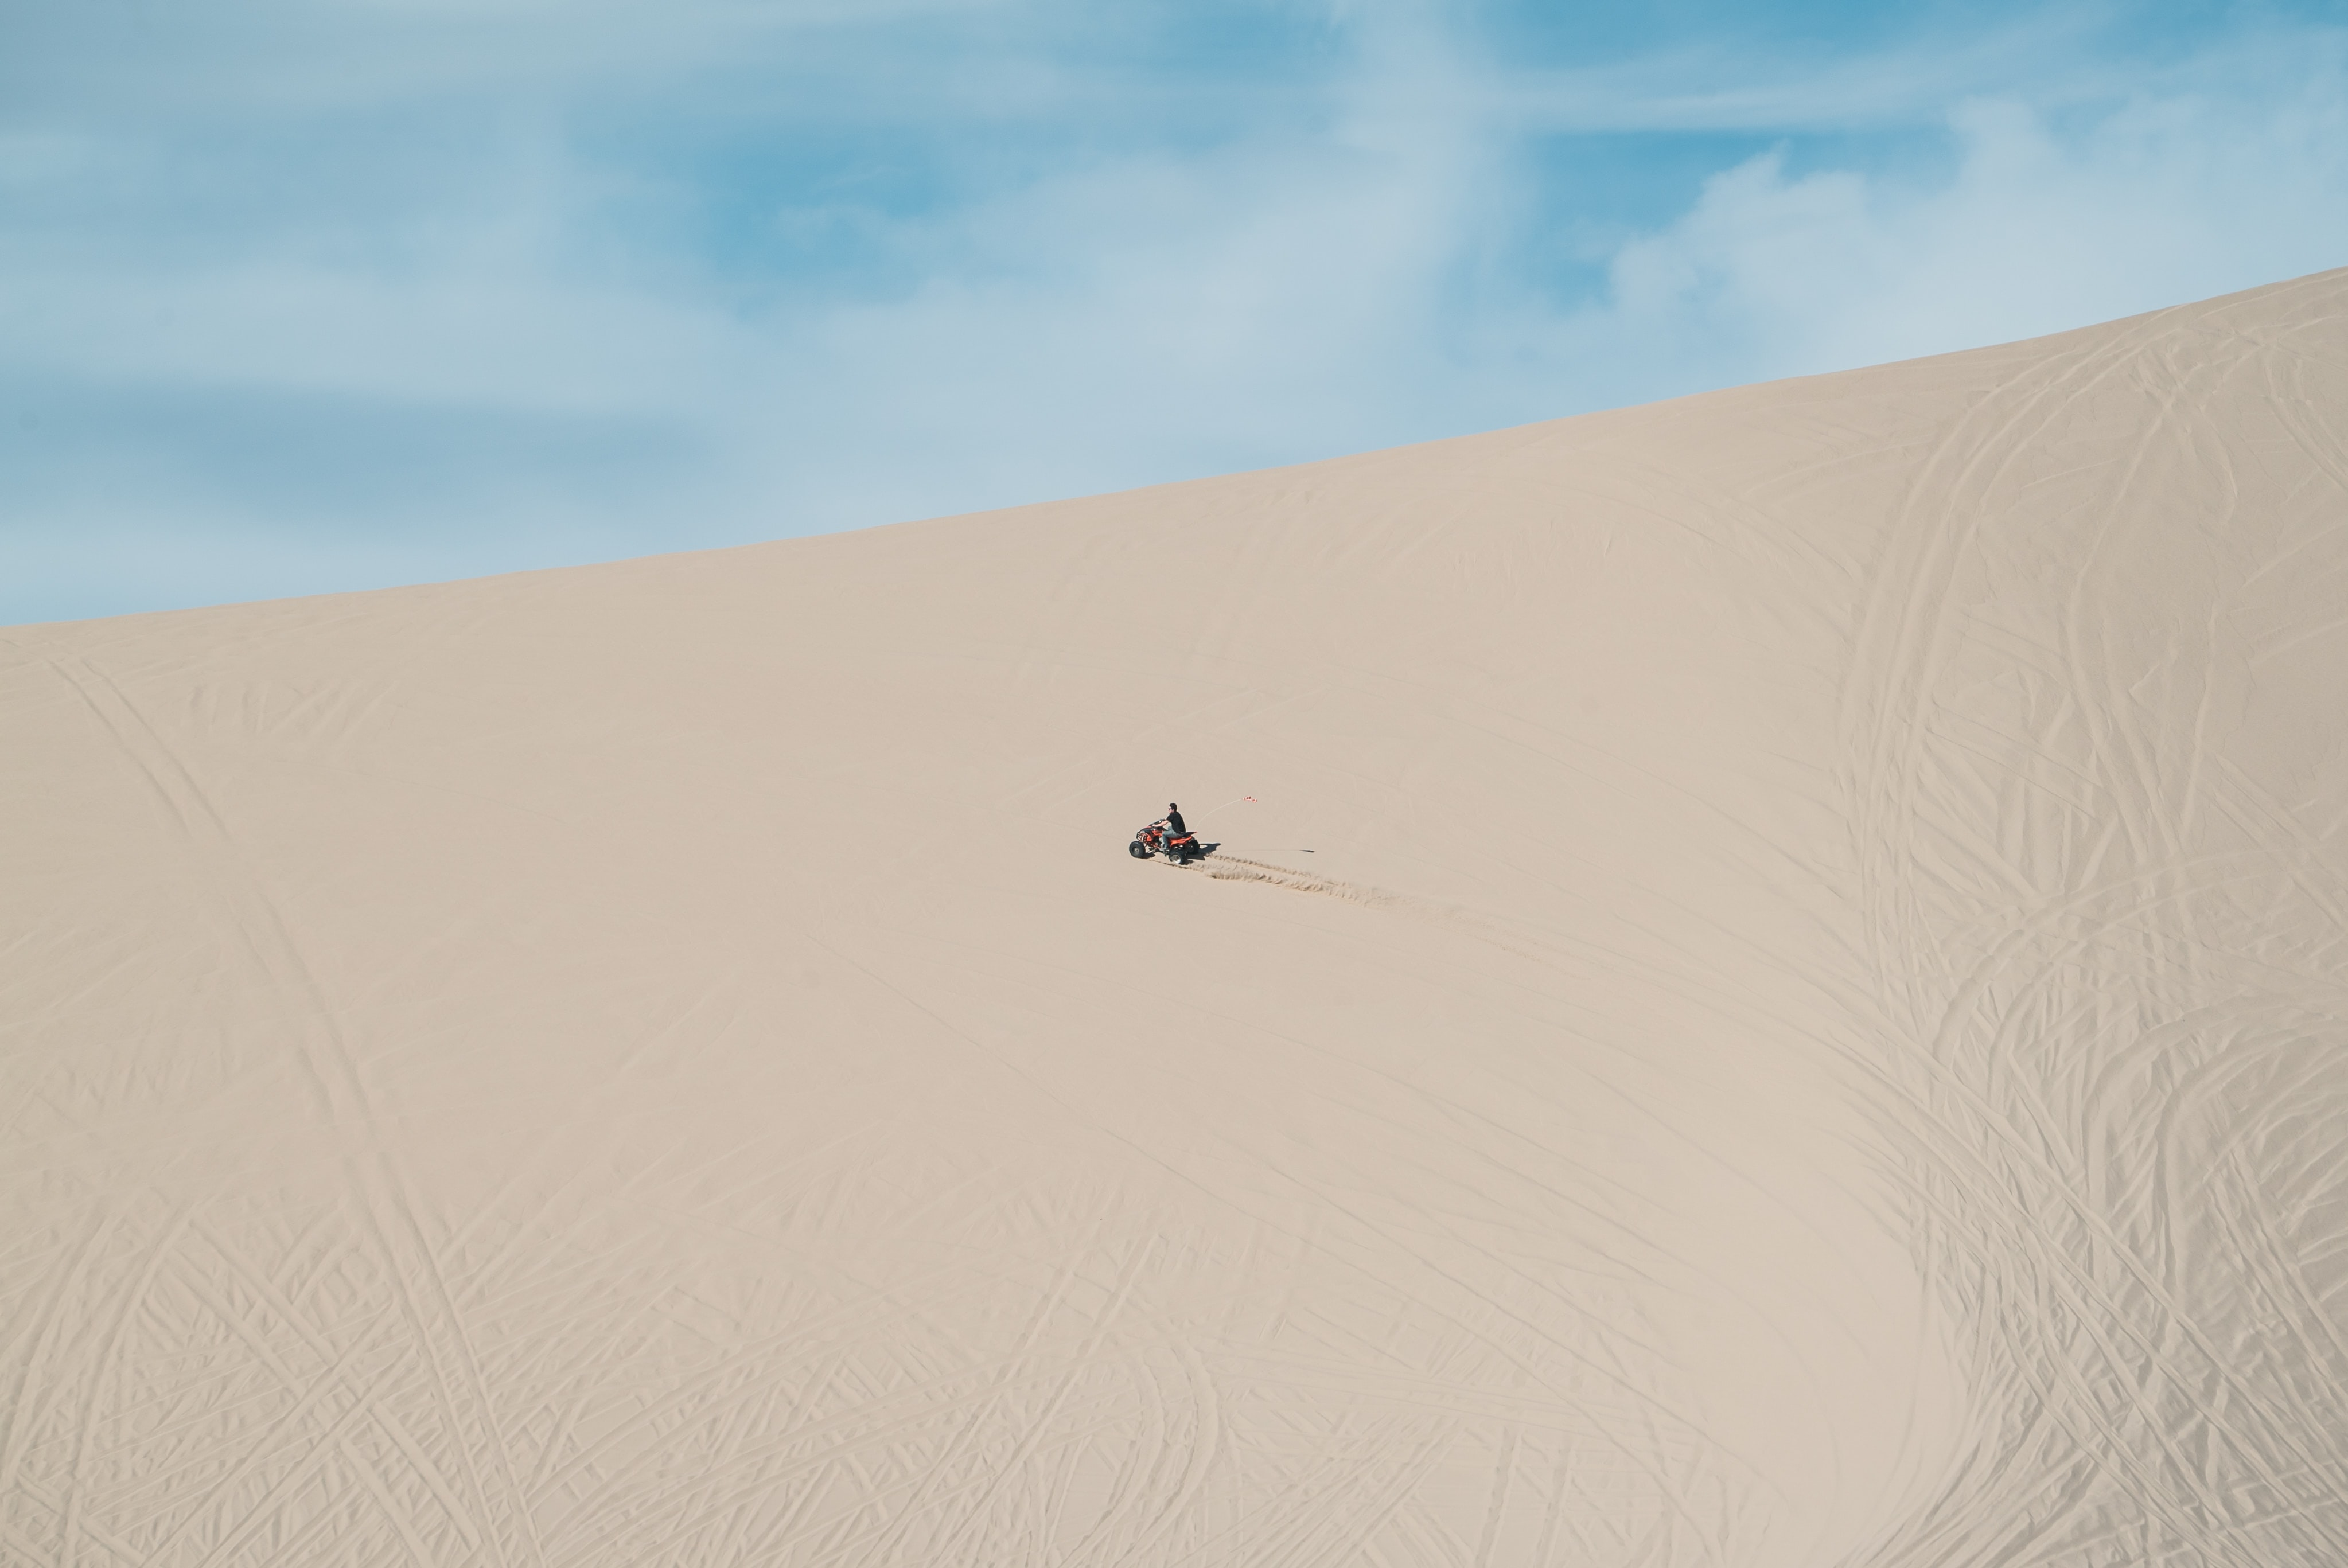 person riding motorcycle in the sand